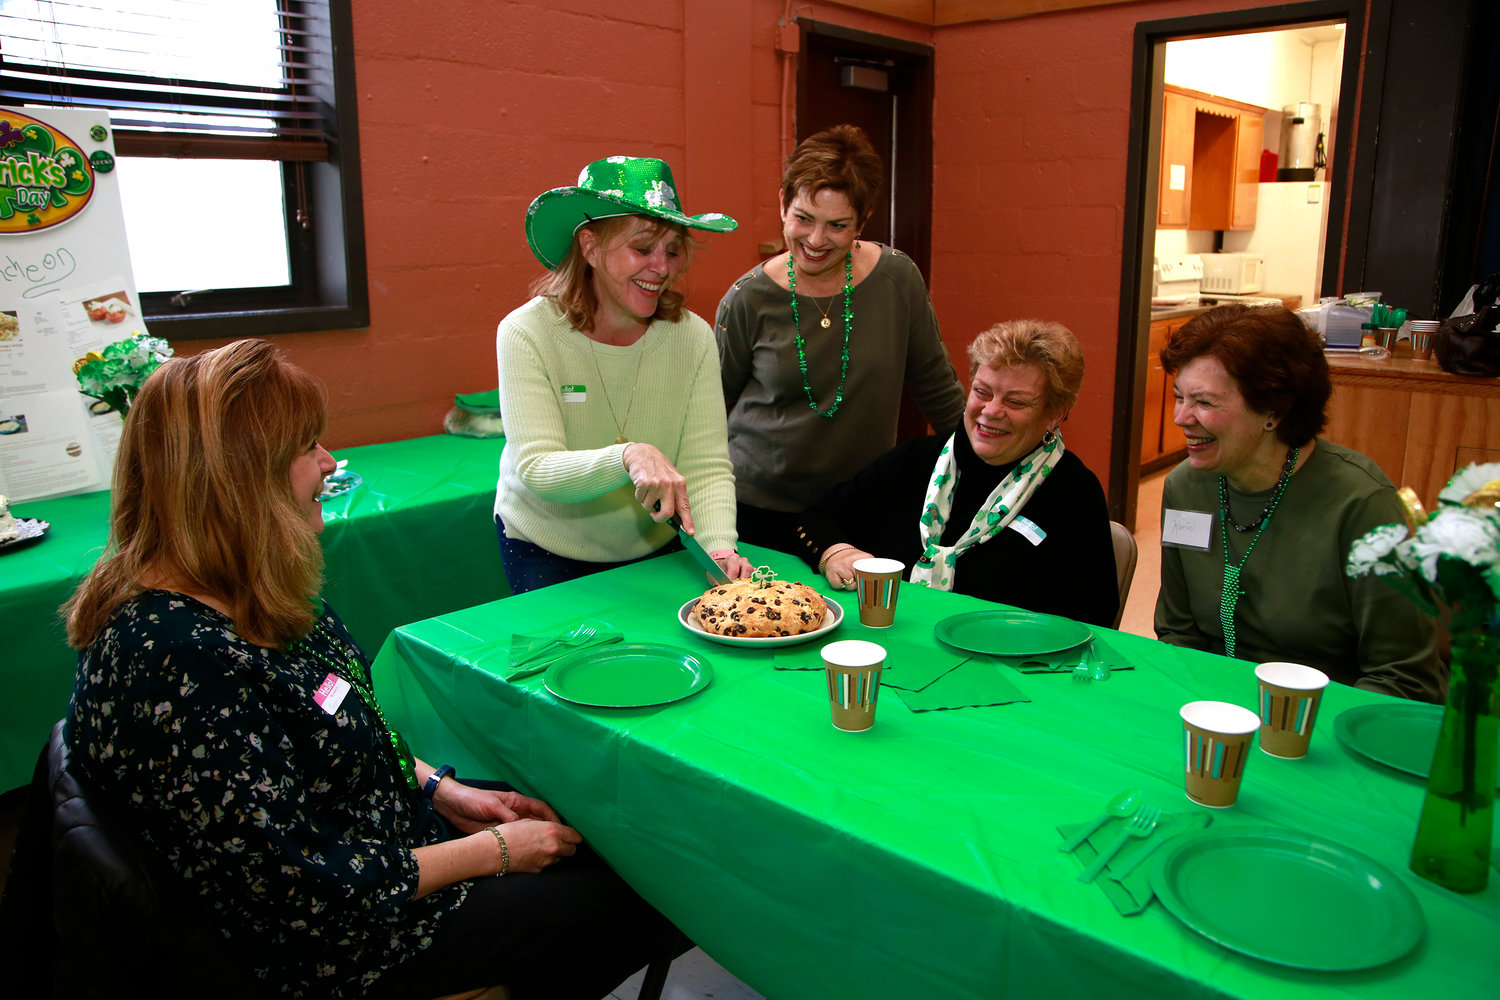 Marilyn Jurgensen, Terry Schmitt, Pat Gagliardi, Barbara Lehman and Karin Levy excitedly dug into homemade Irish Soda Bread.